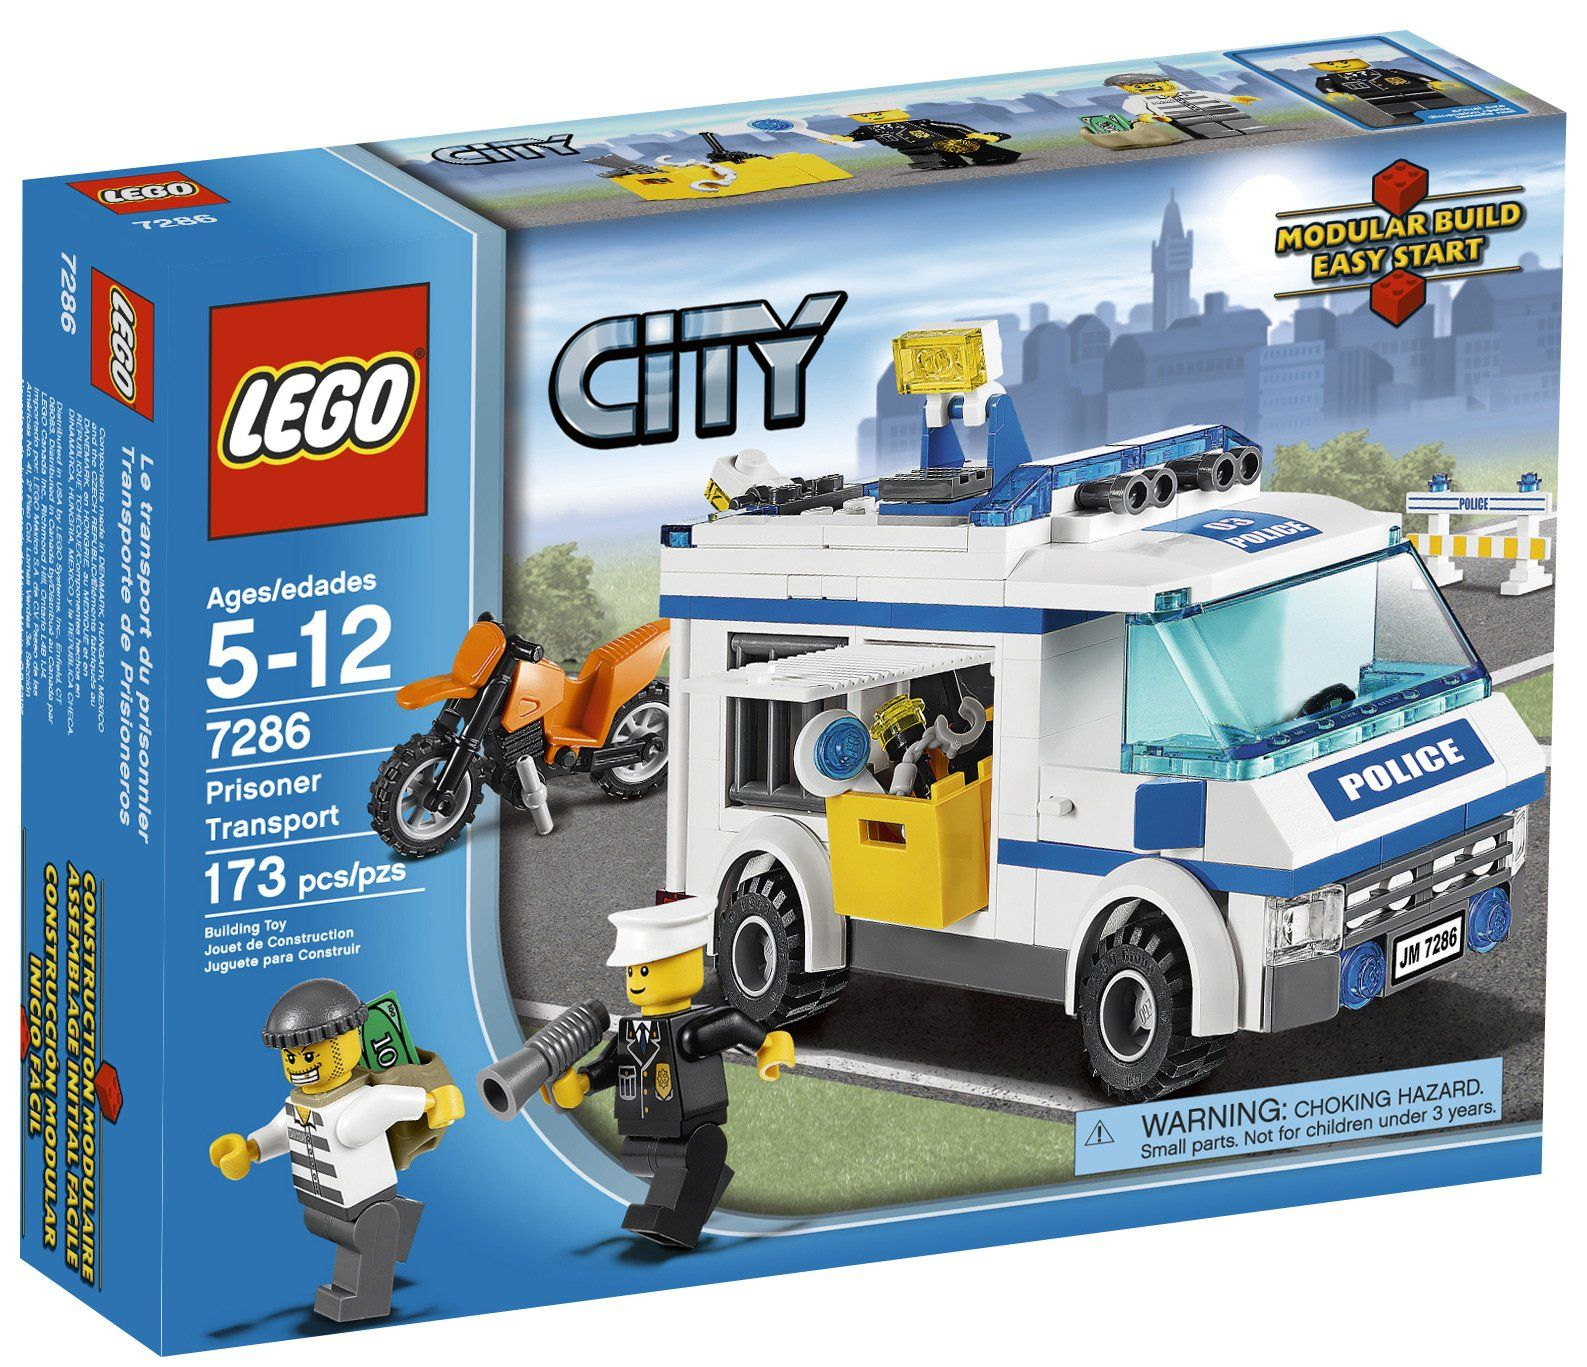 Lego City 7286 Prisoner Transport Brand New and Factory Sealed